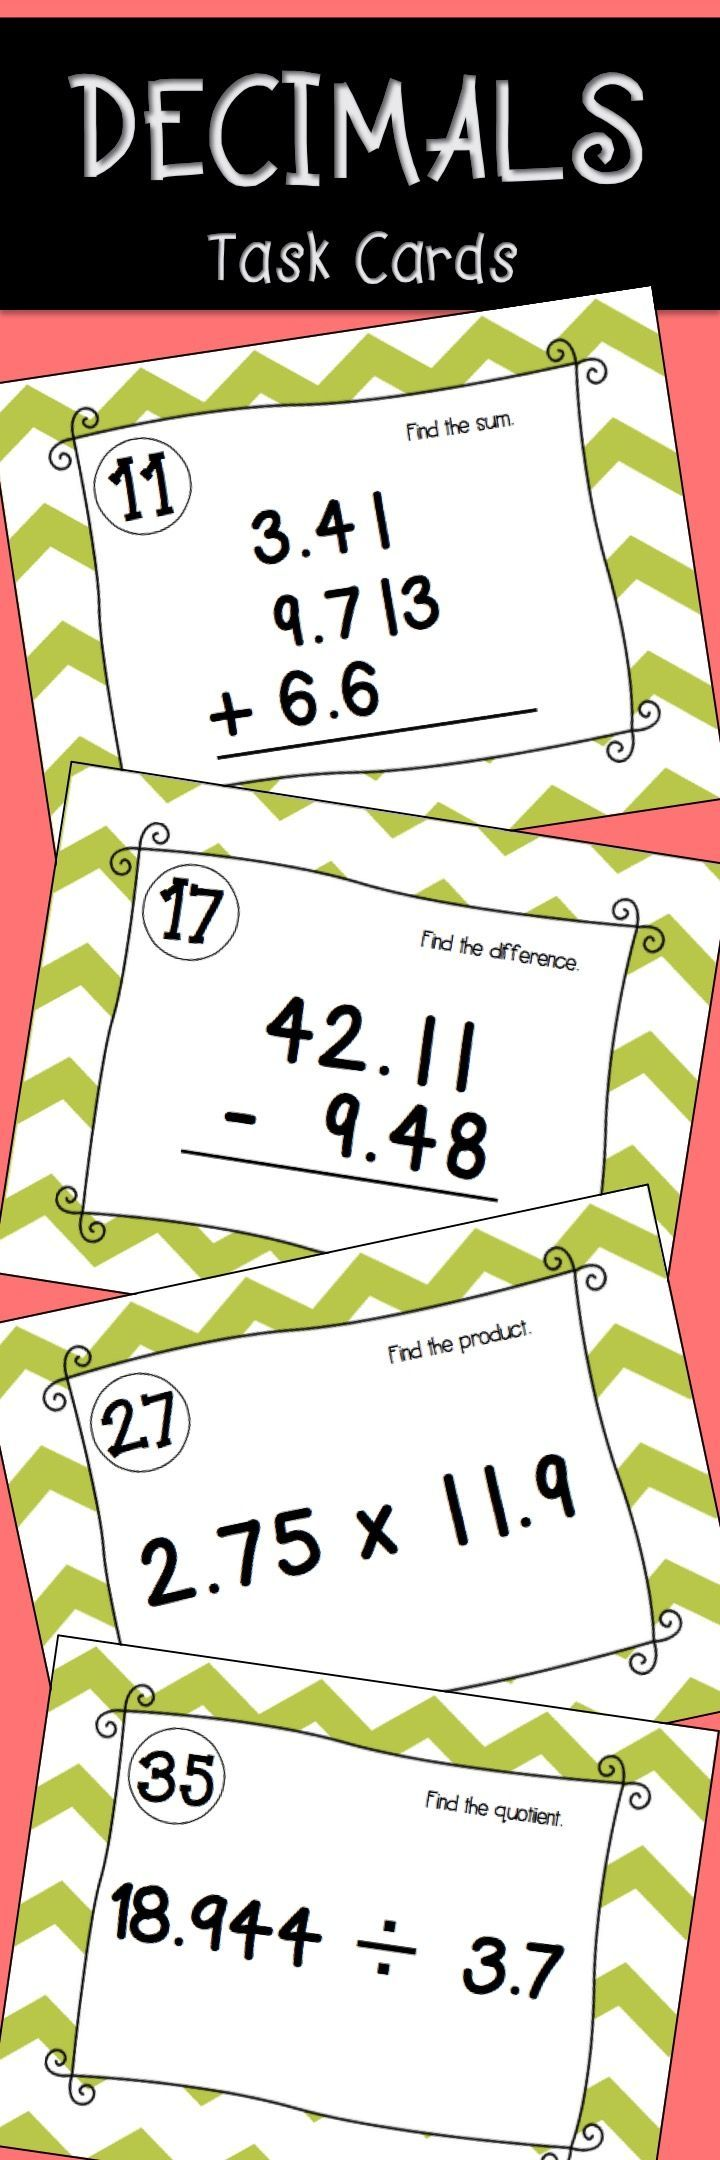 Decimal Task Cards activity. Adding decimals, subtracting decimals, multiplying and dividing decimals.